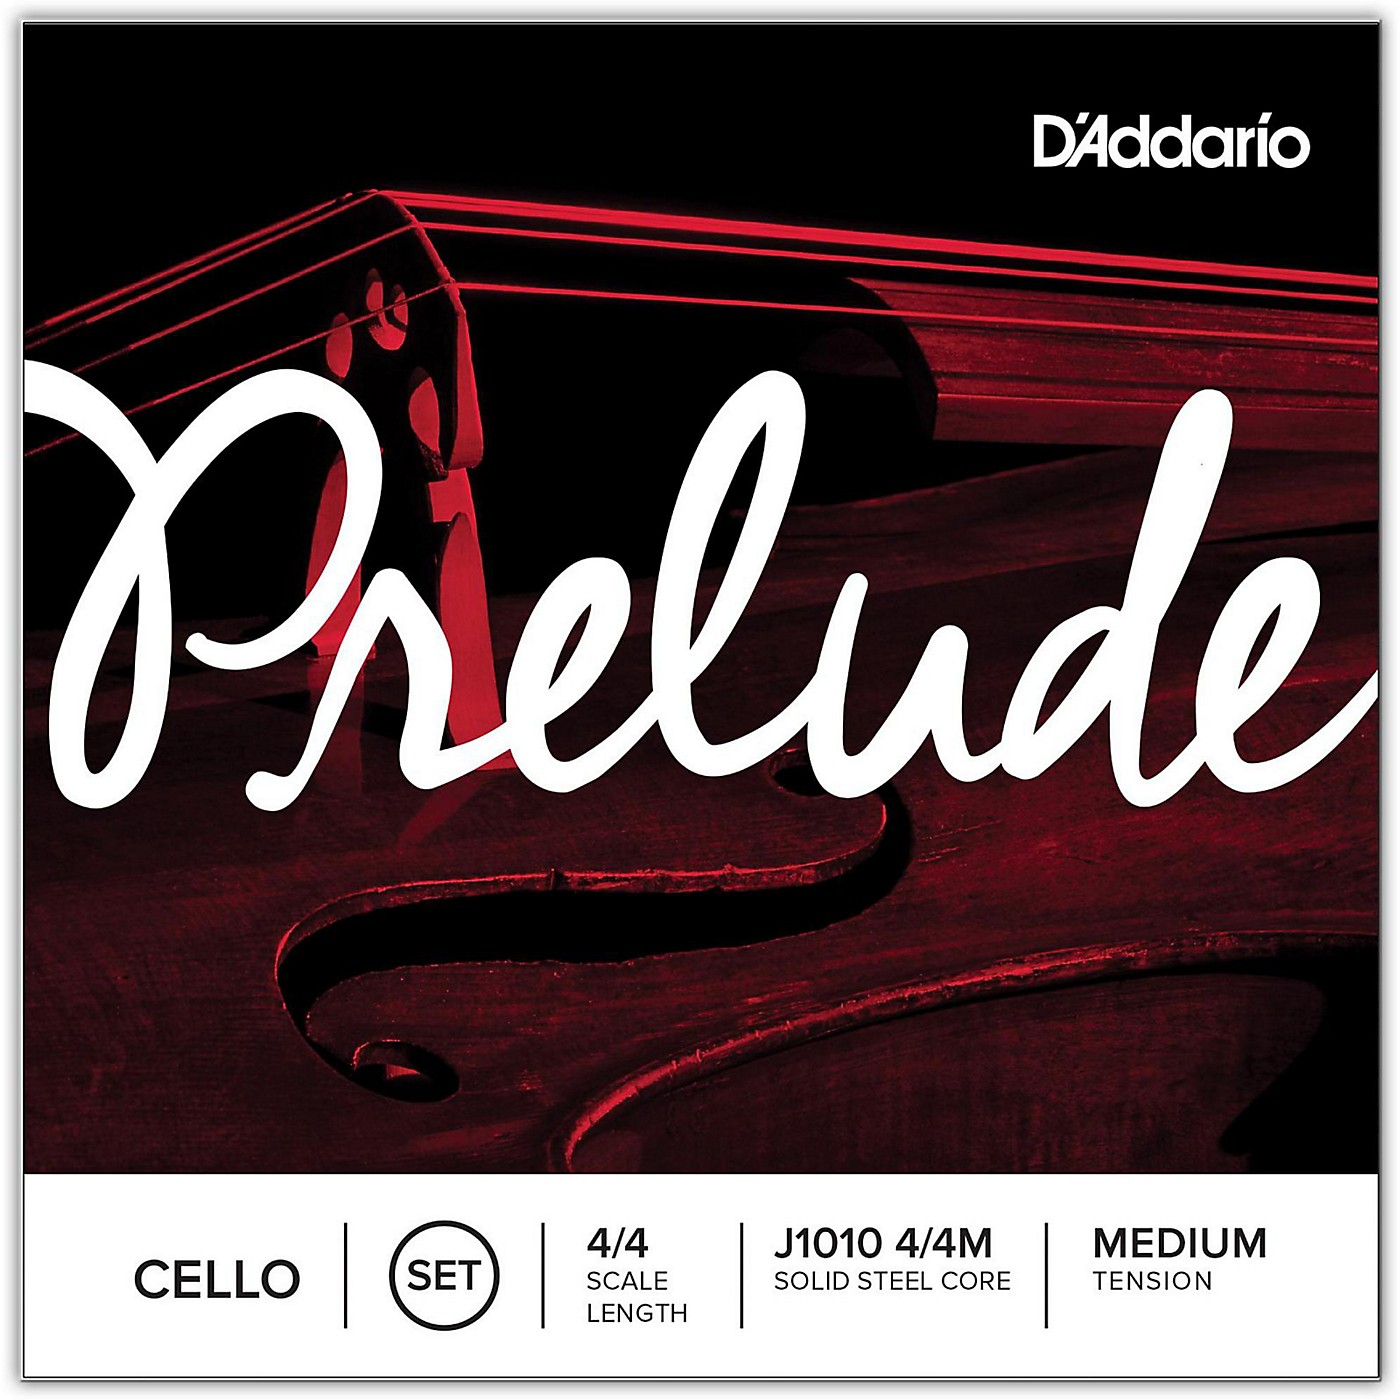 D'Addario Prelude Cello String Set thumbnail